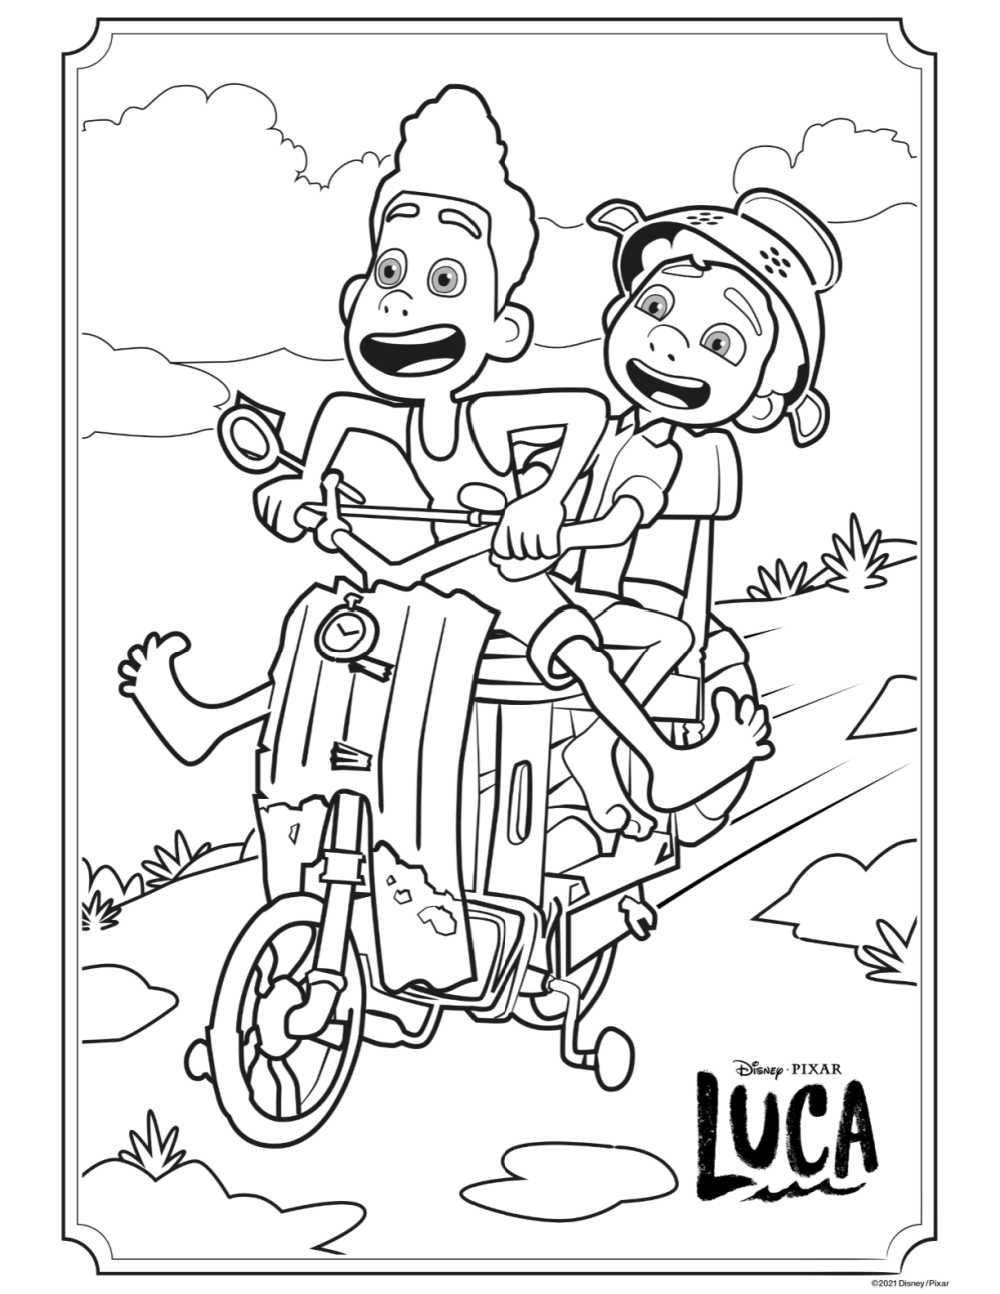 scooter ride coloring page